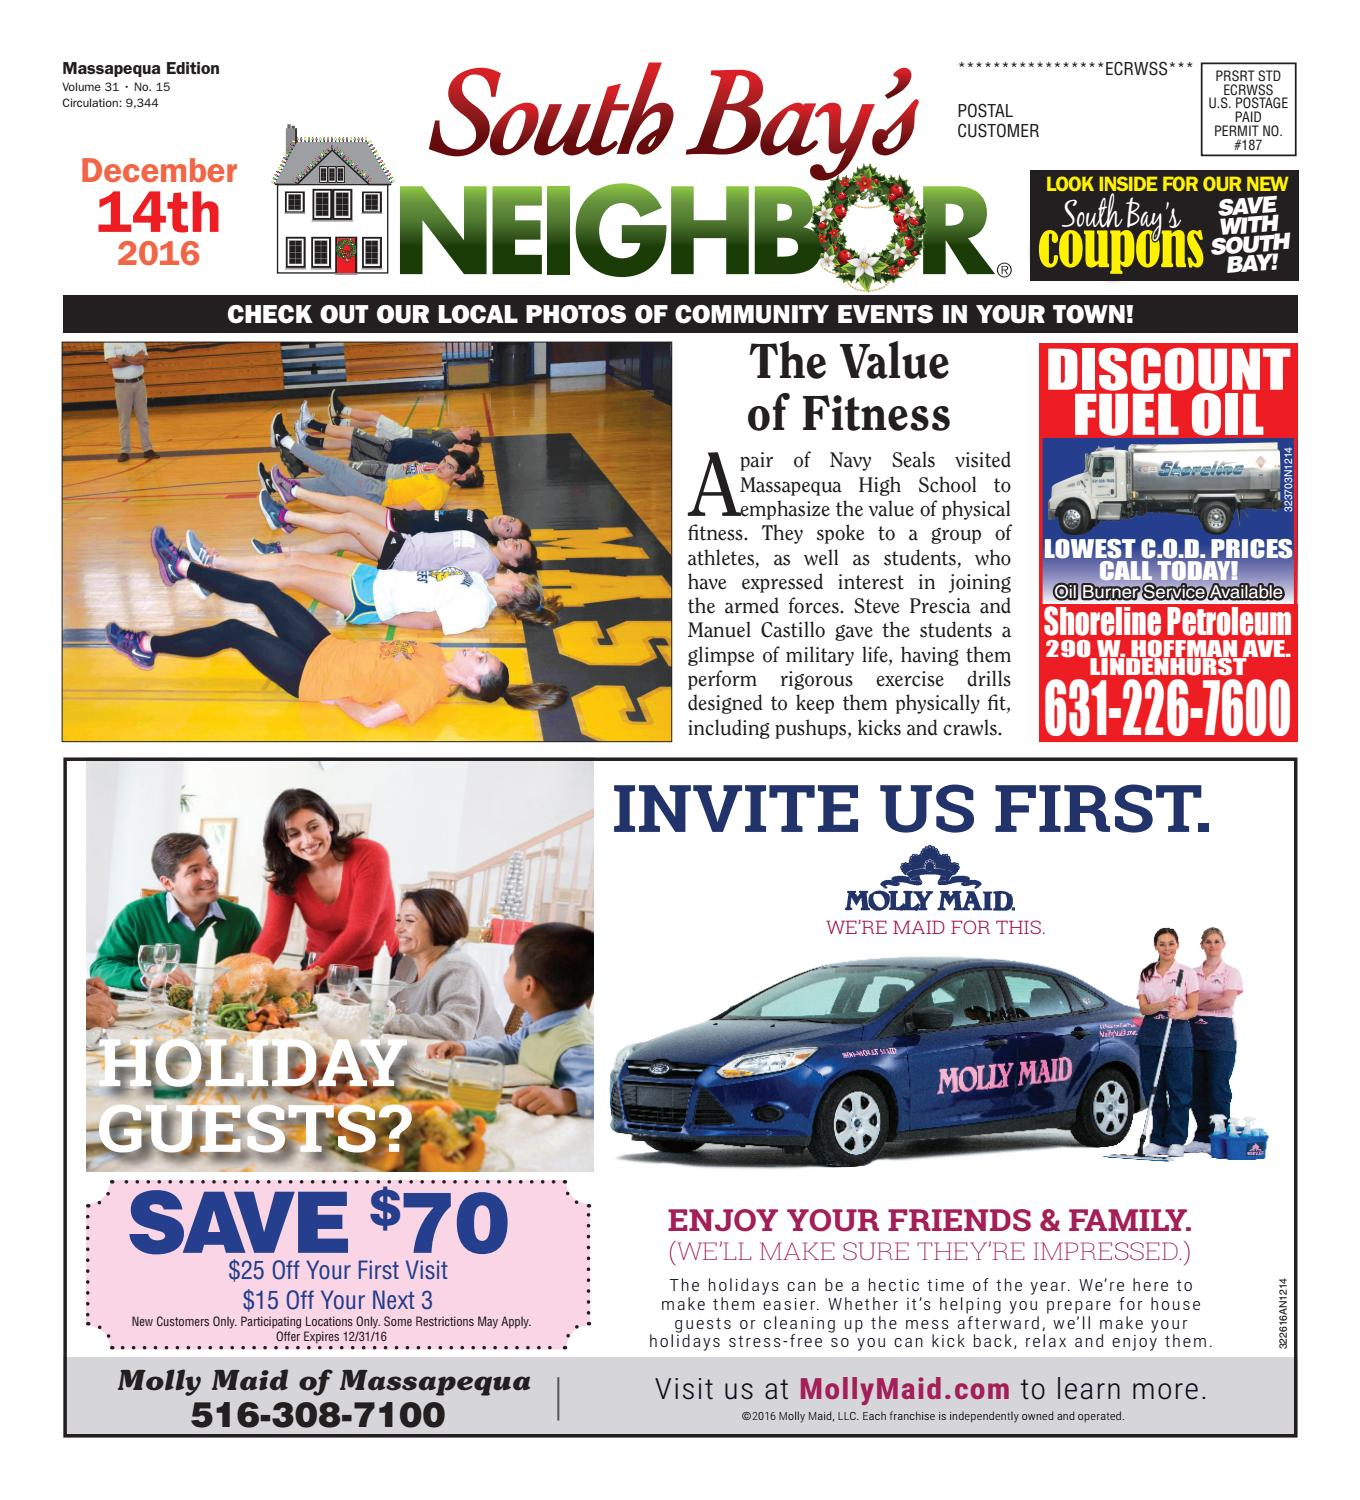 December 14 2016 Massapequa by South Bay s Neighbor Newspapers issuu